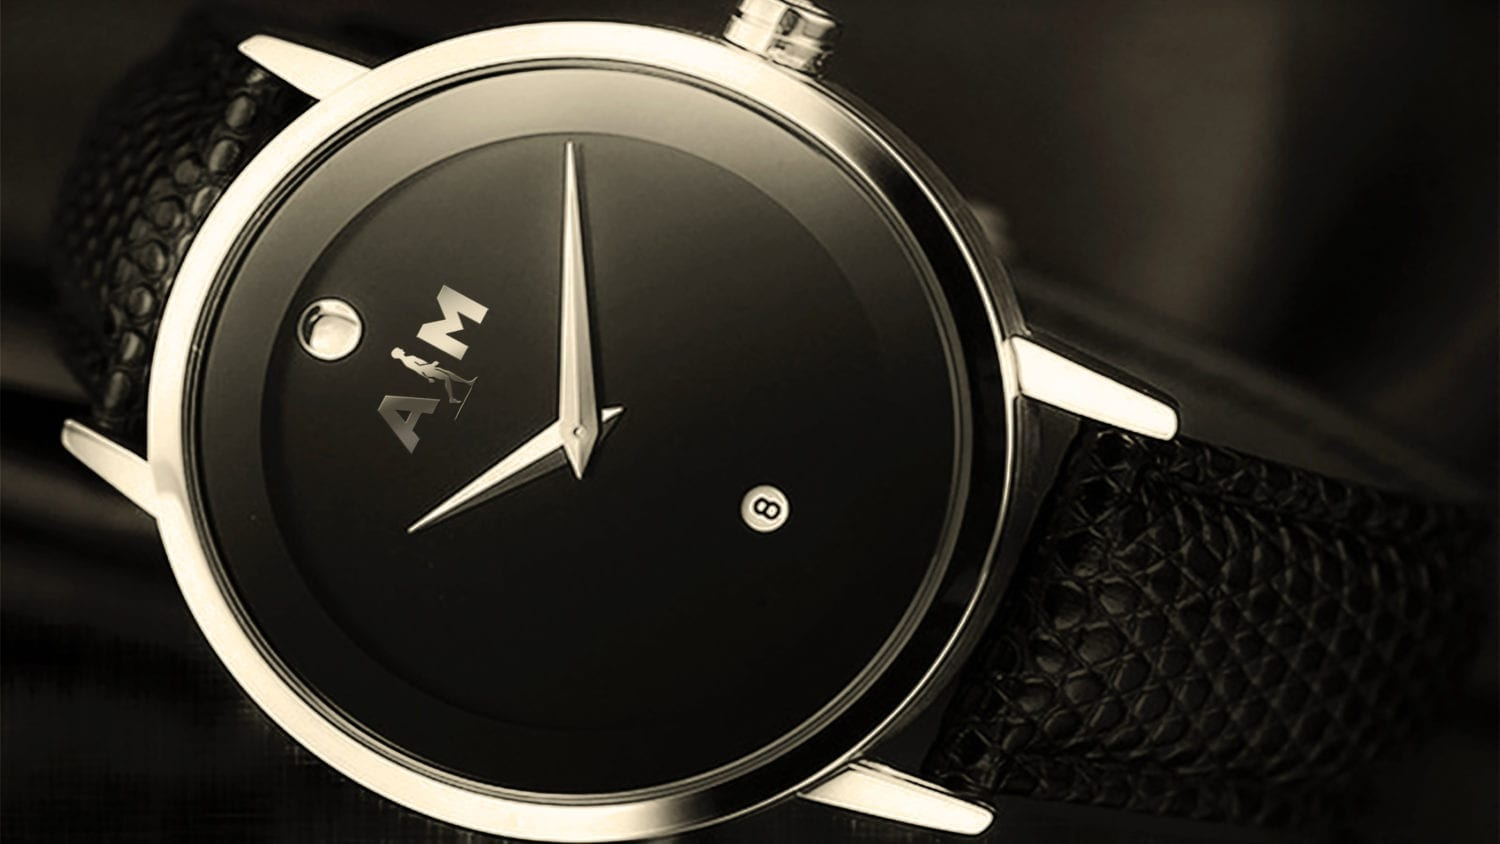 Aim_attitude_luxury_watch_image-2